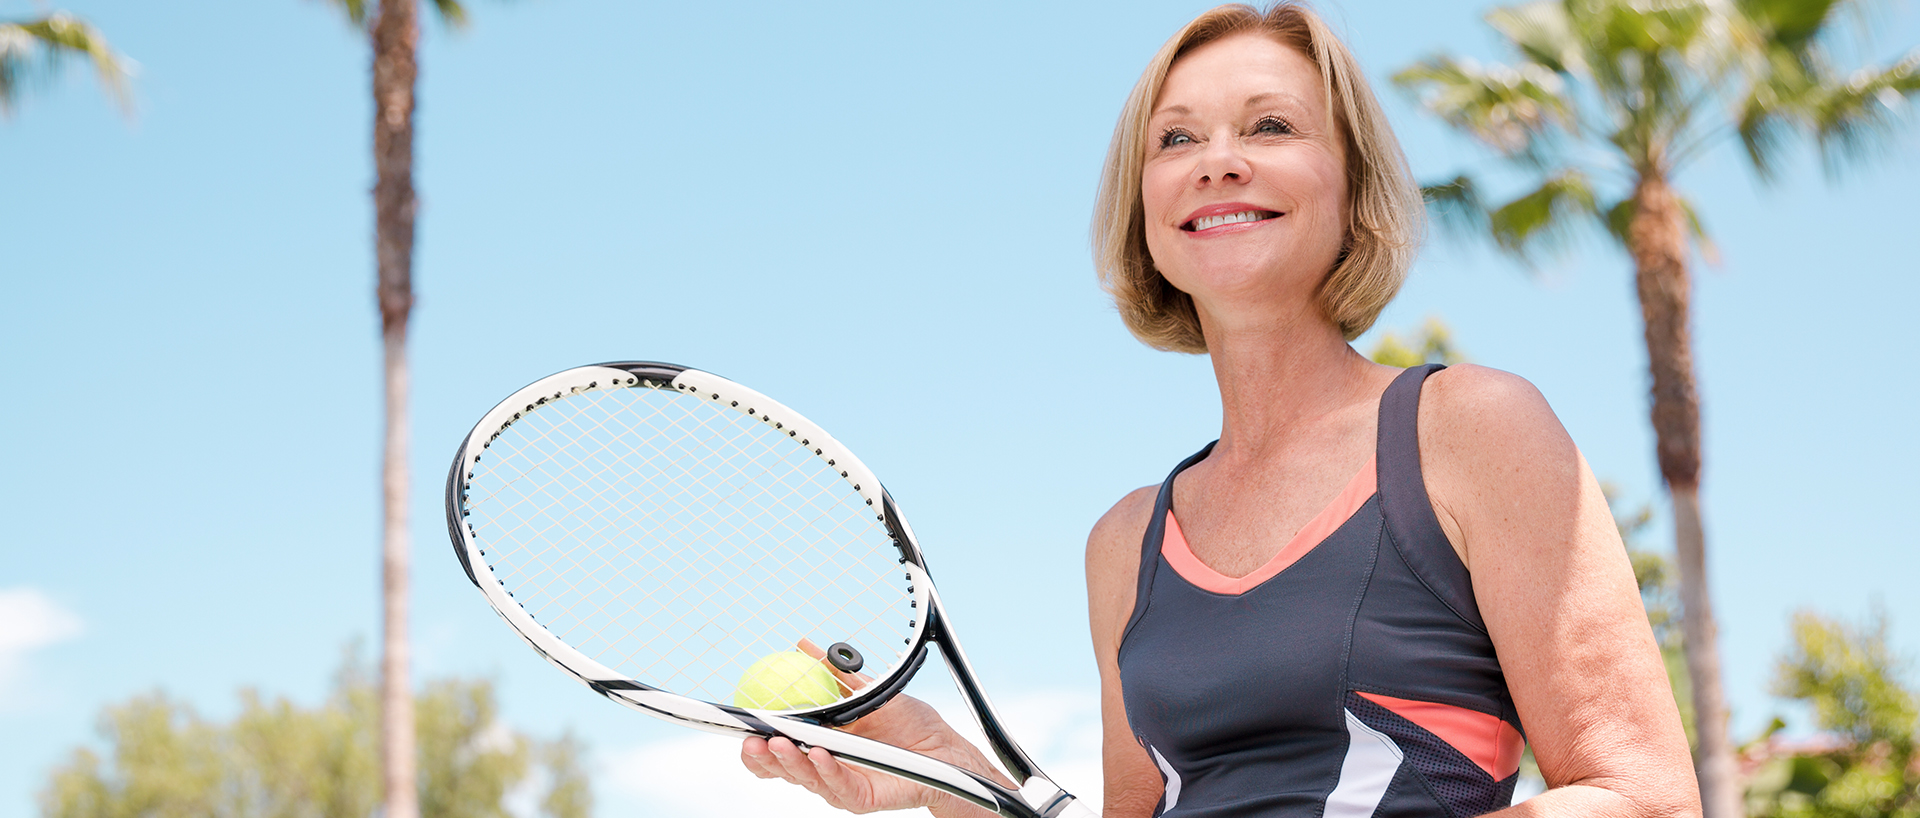 Woman standing outside smiling with a tennis racket in her hand